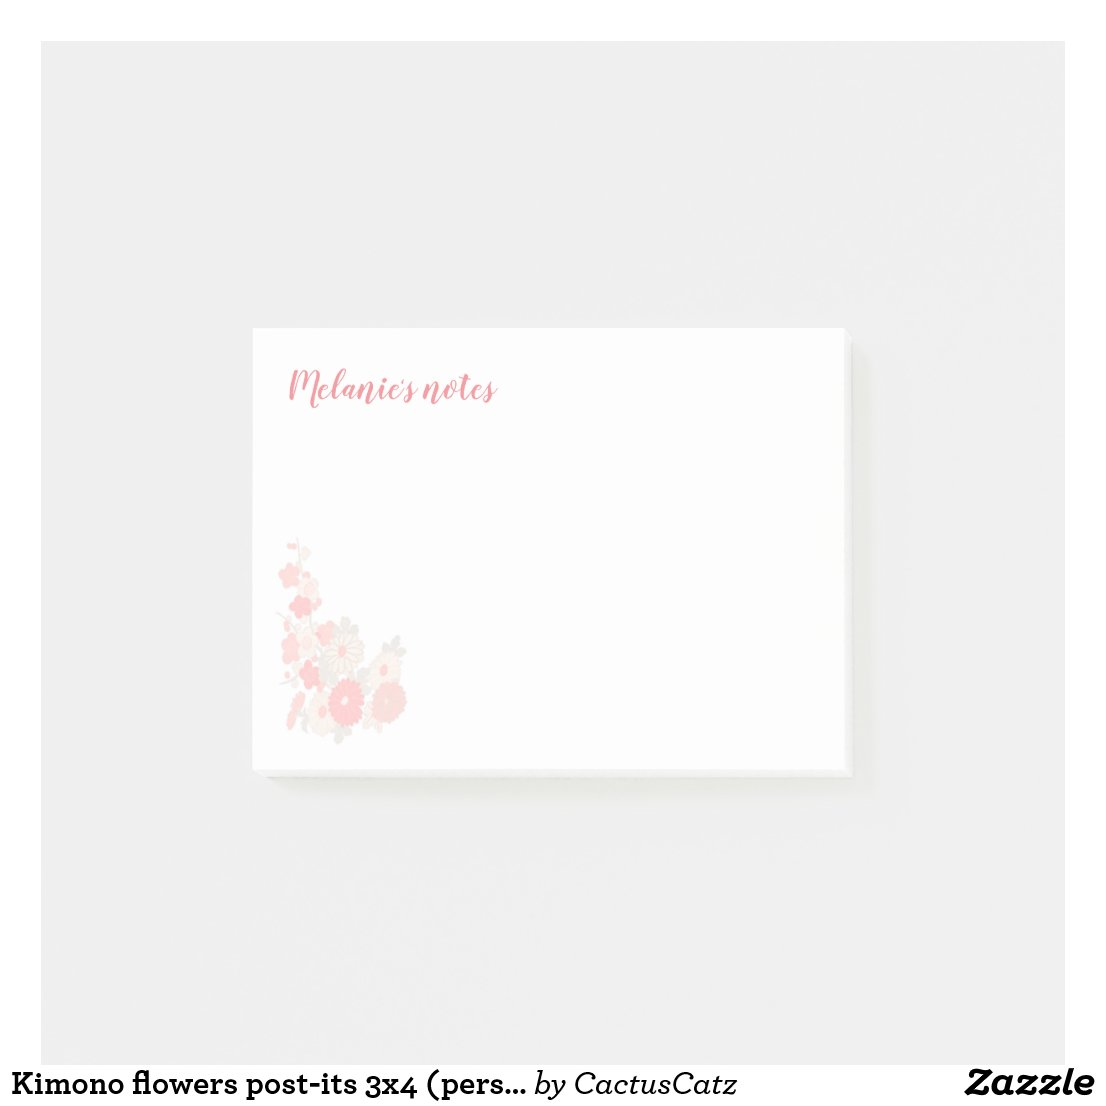 Kimono flowers post-its 3x4 (personalize) post-it notes